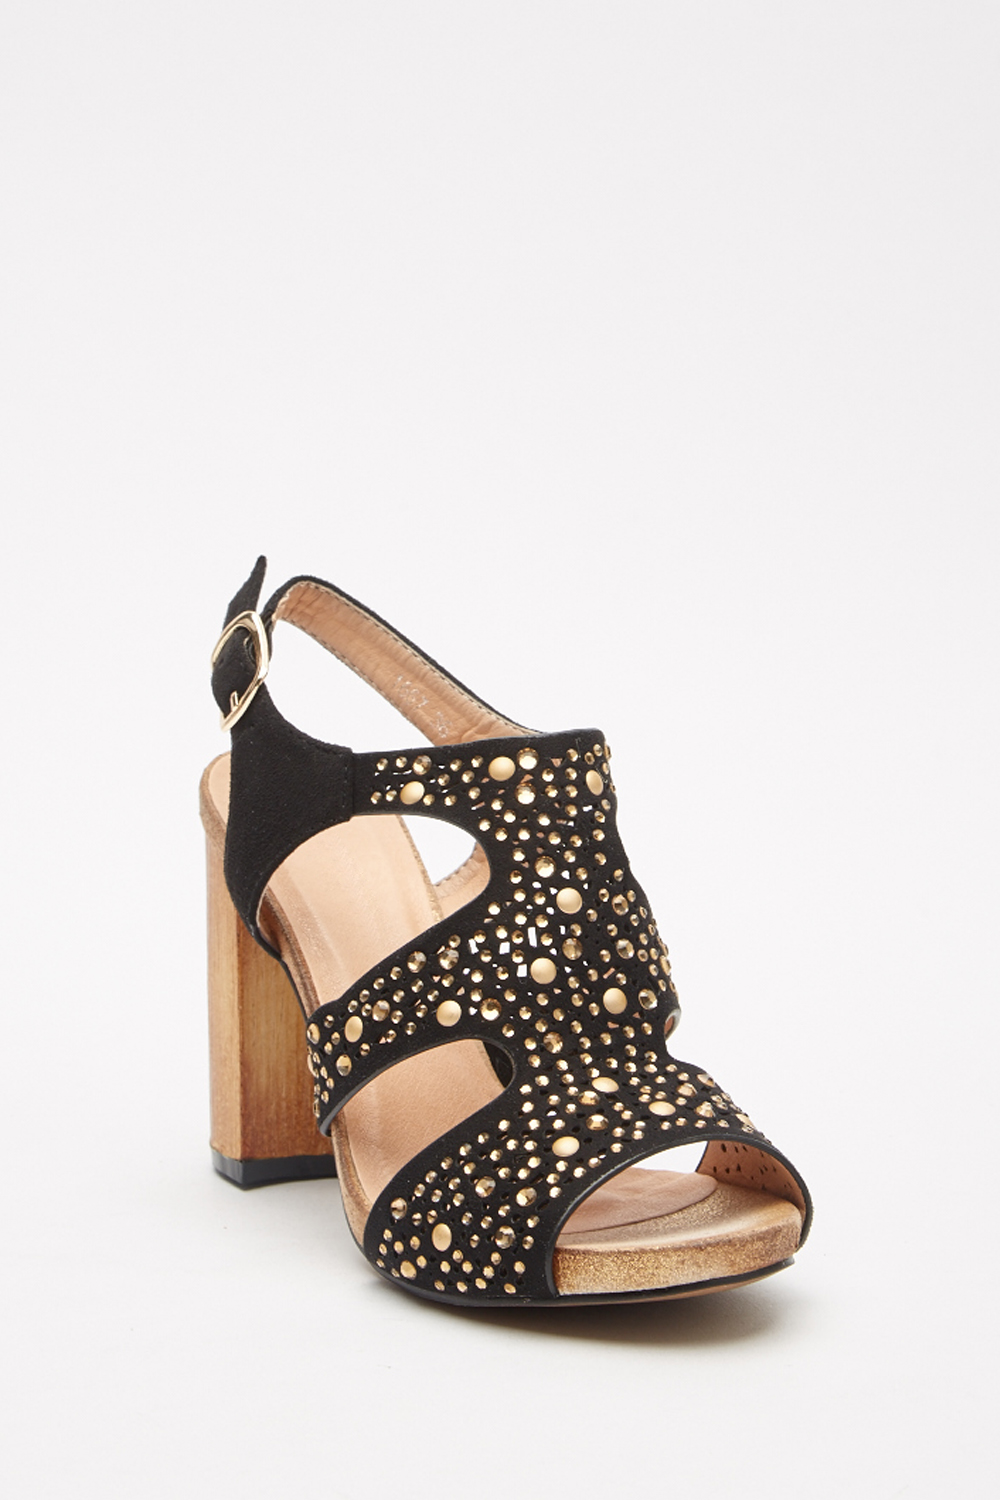 366b4c23aa9 Encrusted Block Heel Sandals - Just £5